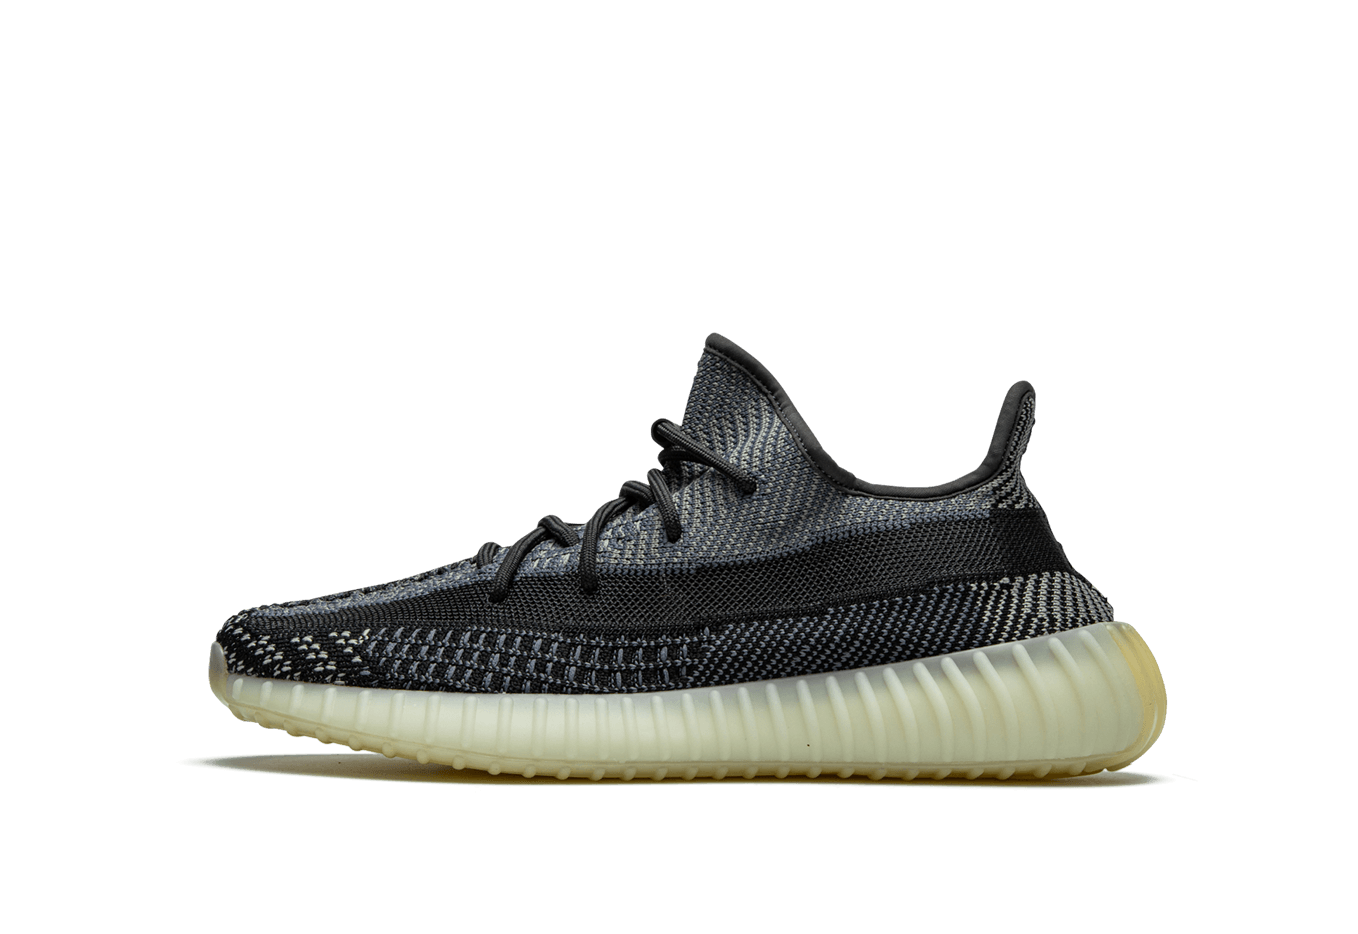 For sale the best Adidas Yeezy Boost 350 V2 Asriel